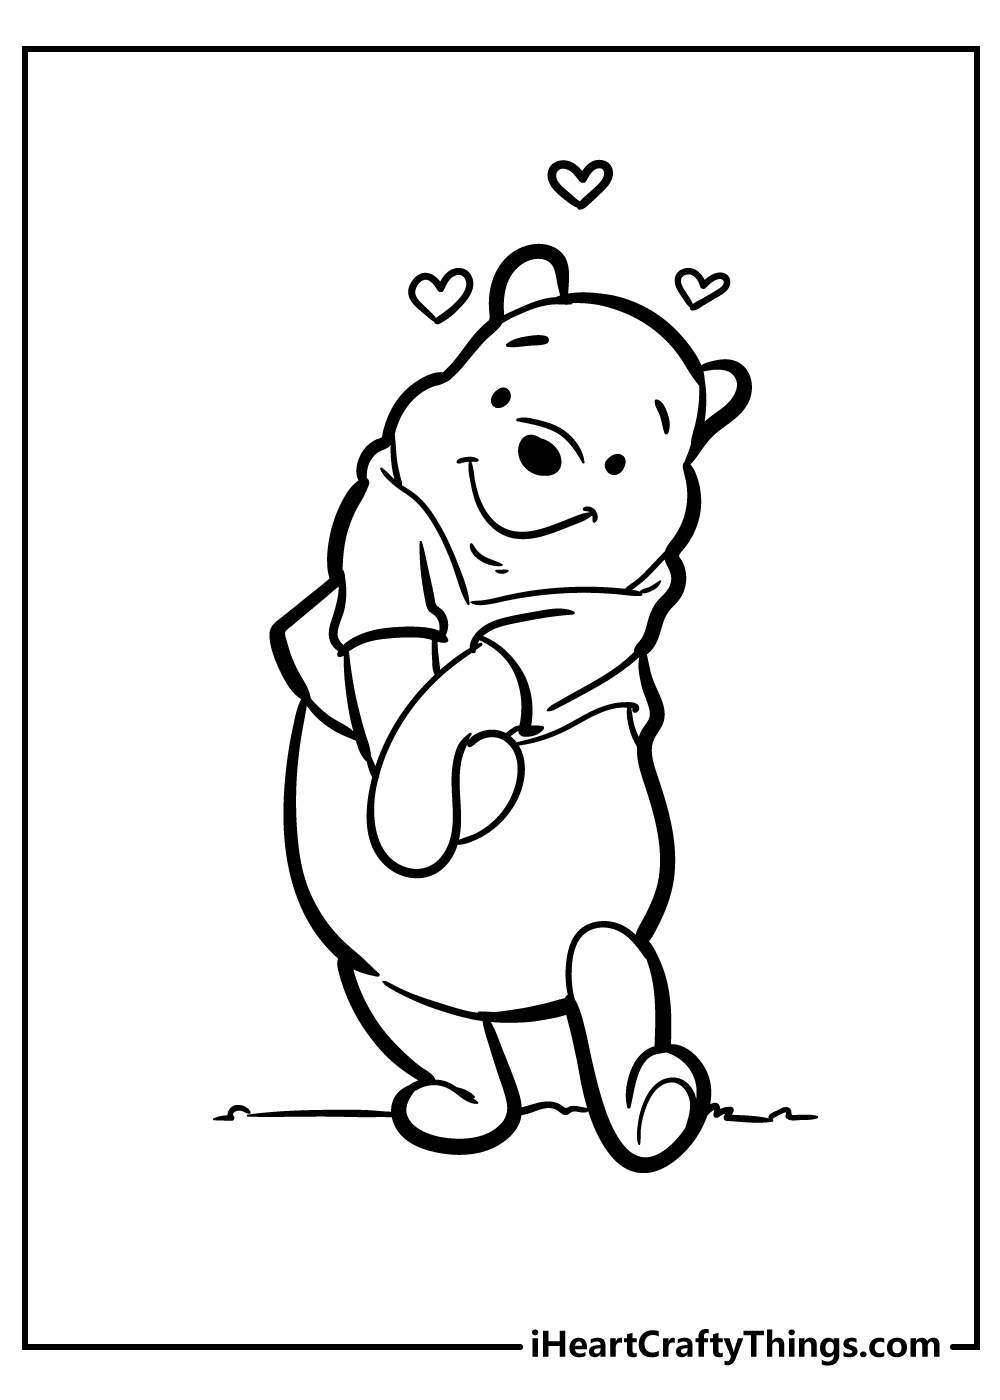 free printable pooh bear coloring pages for adults